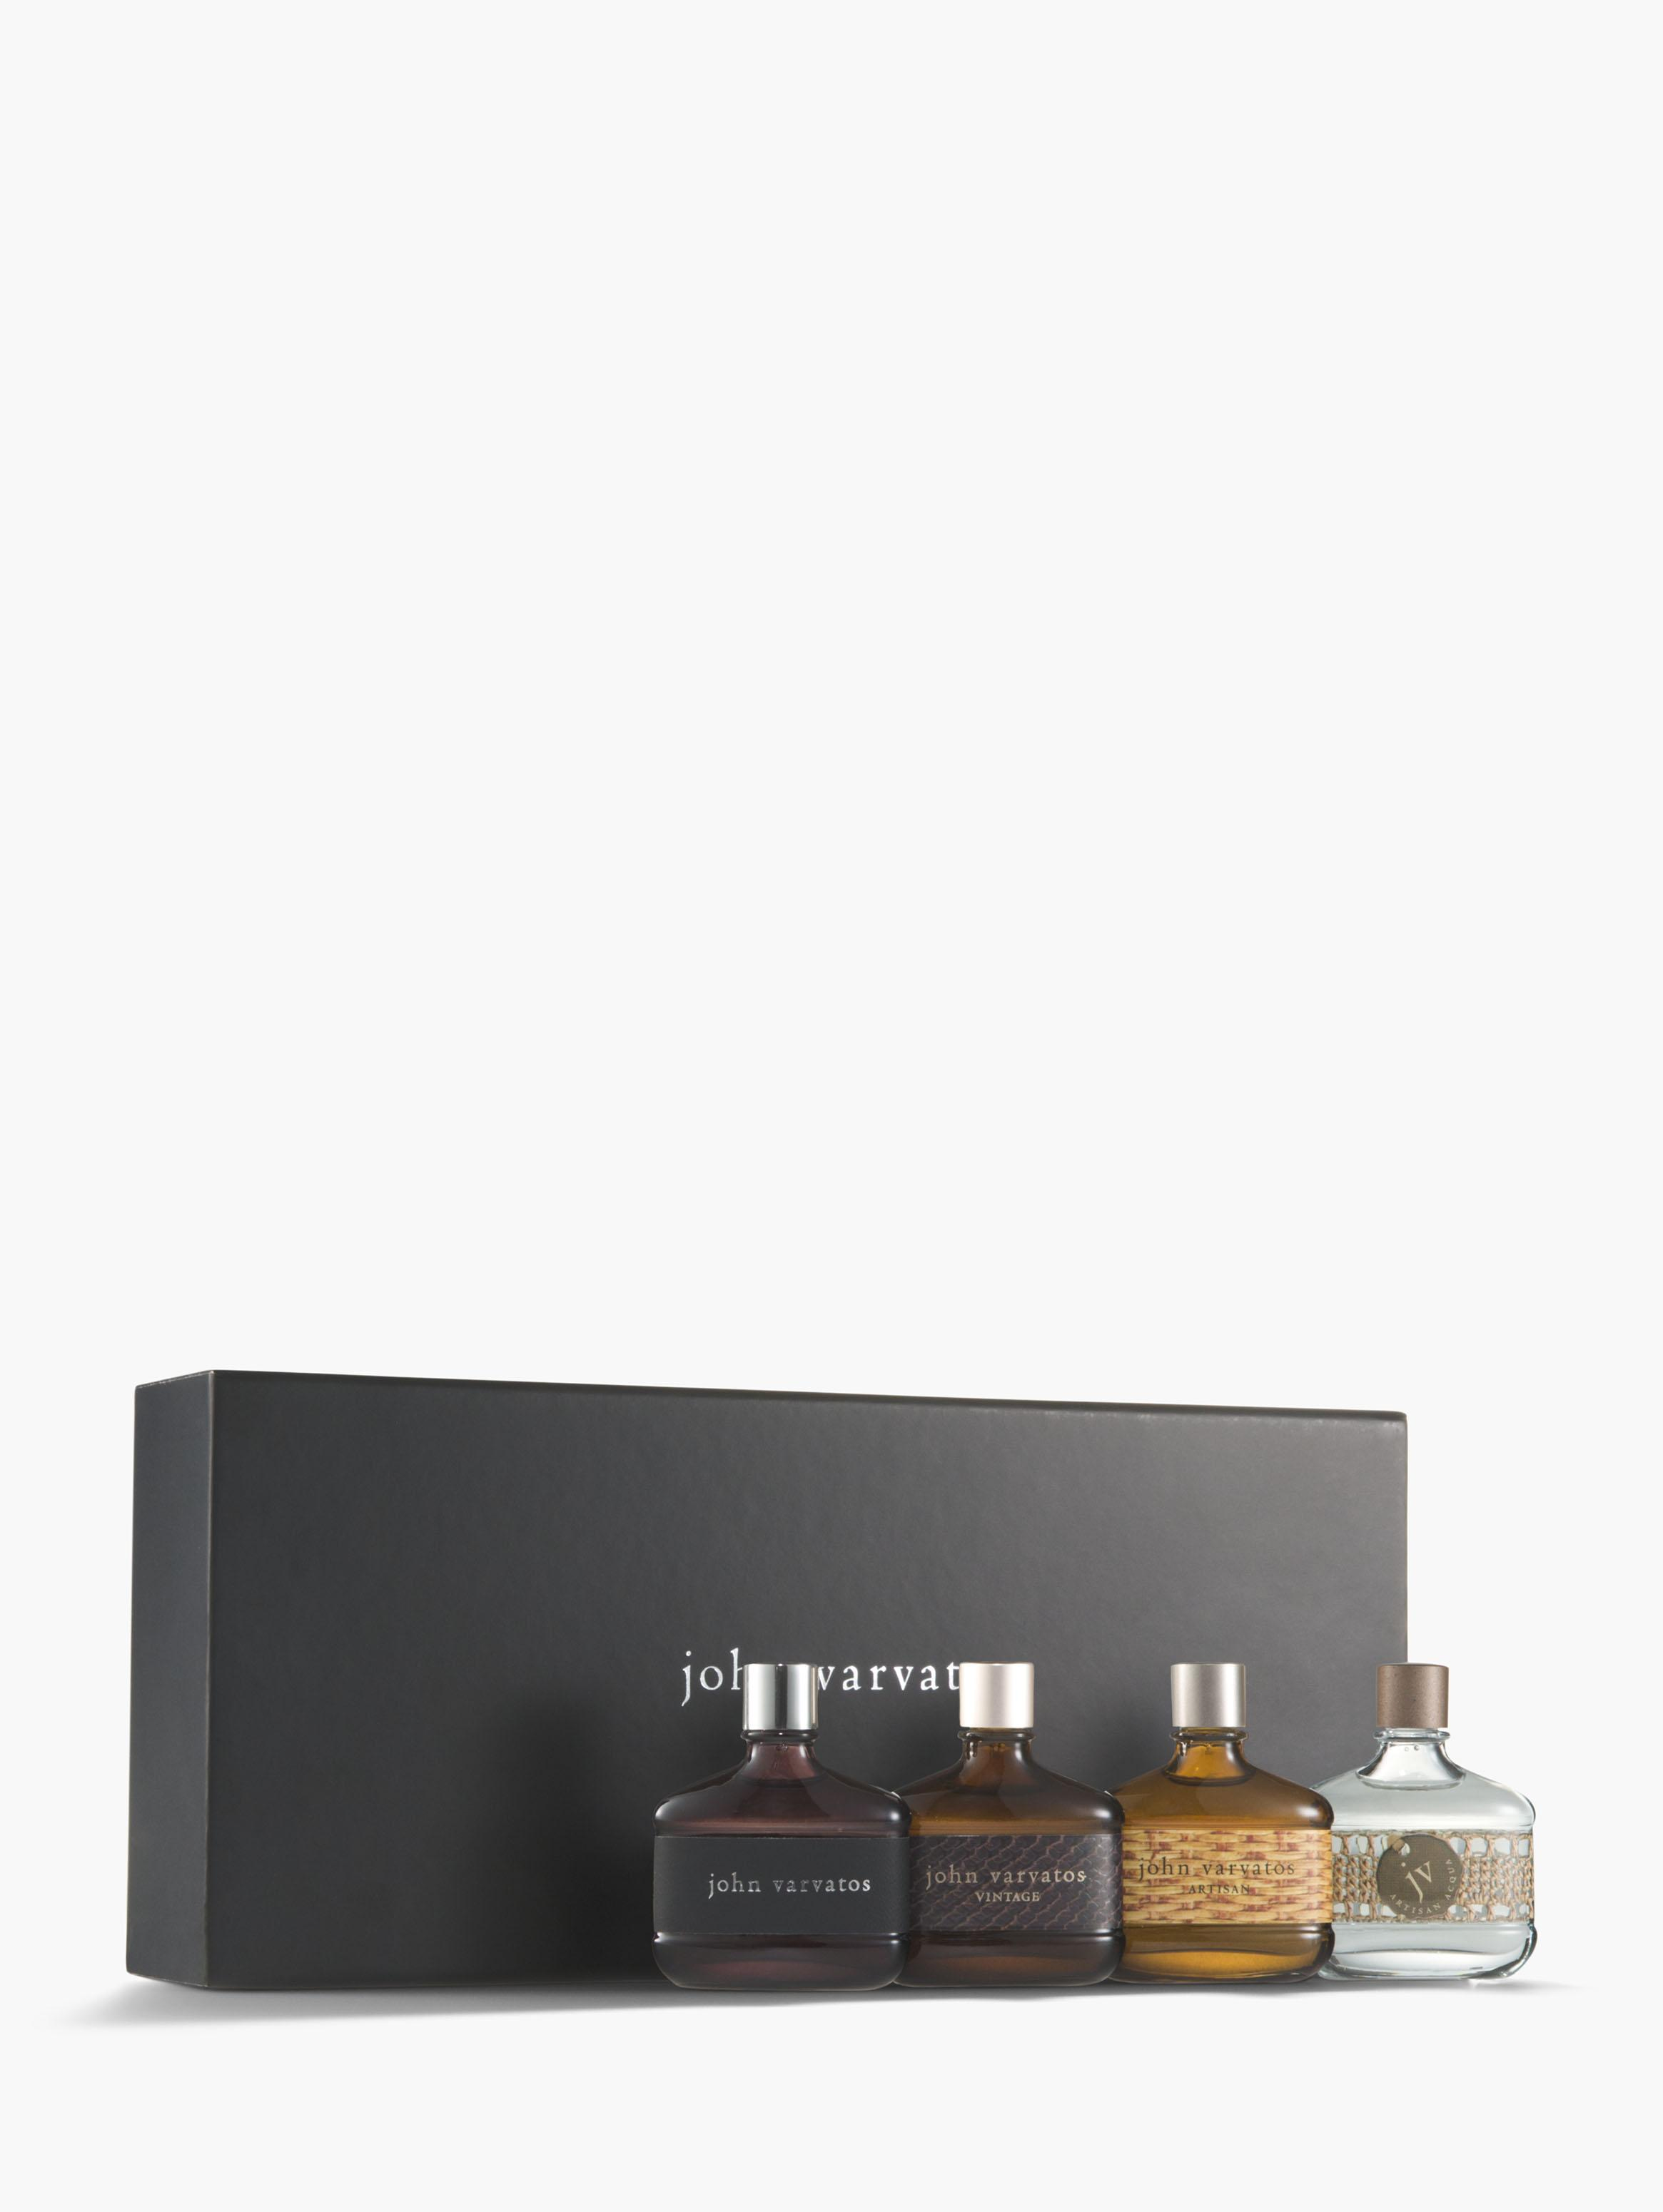 John Varvatos Coffret Gift Set